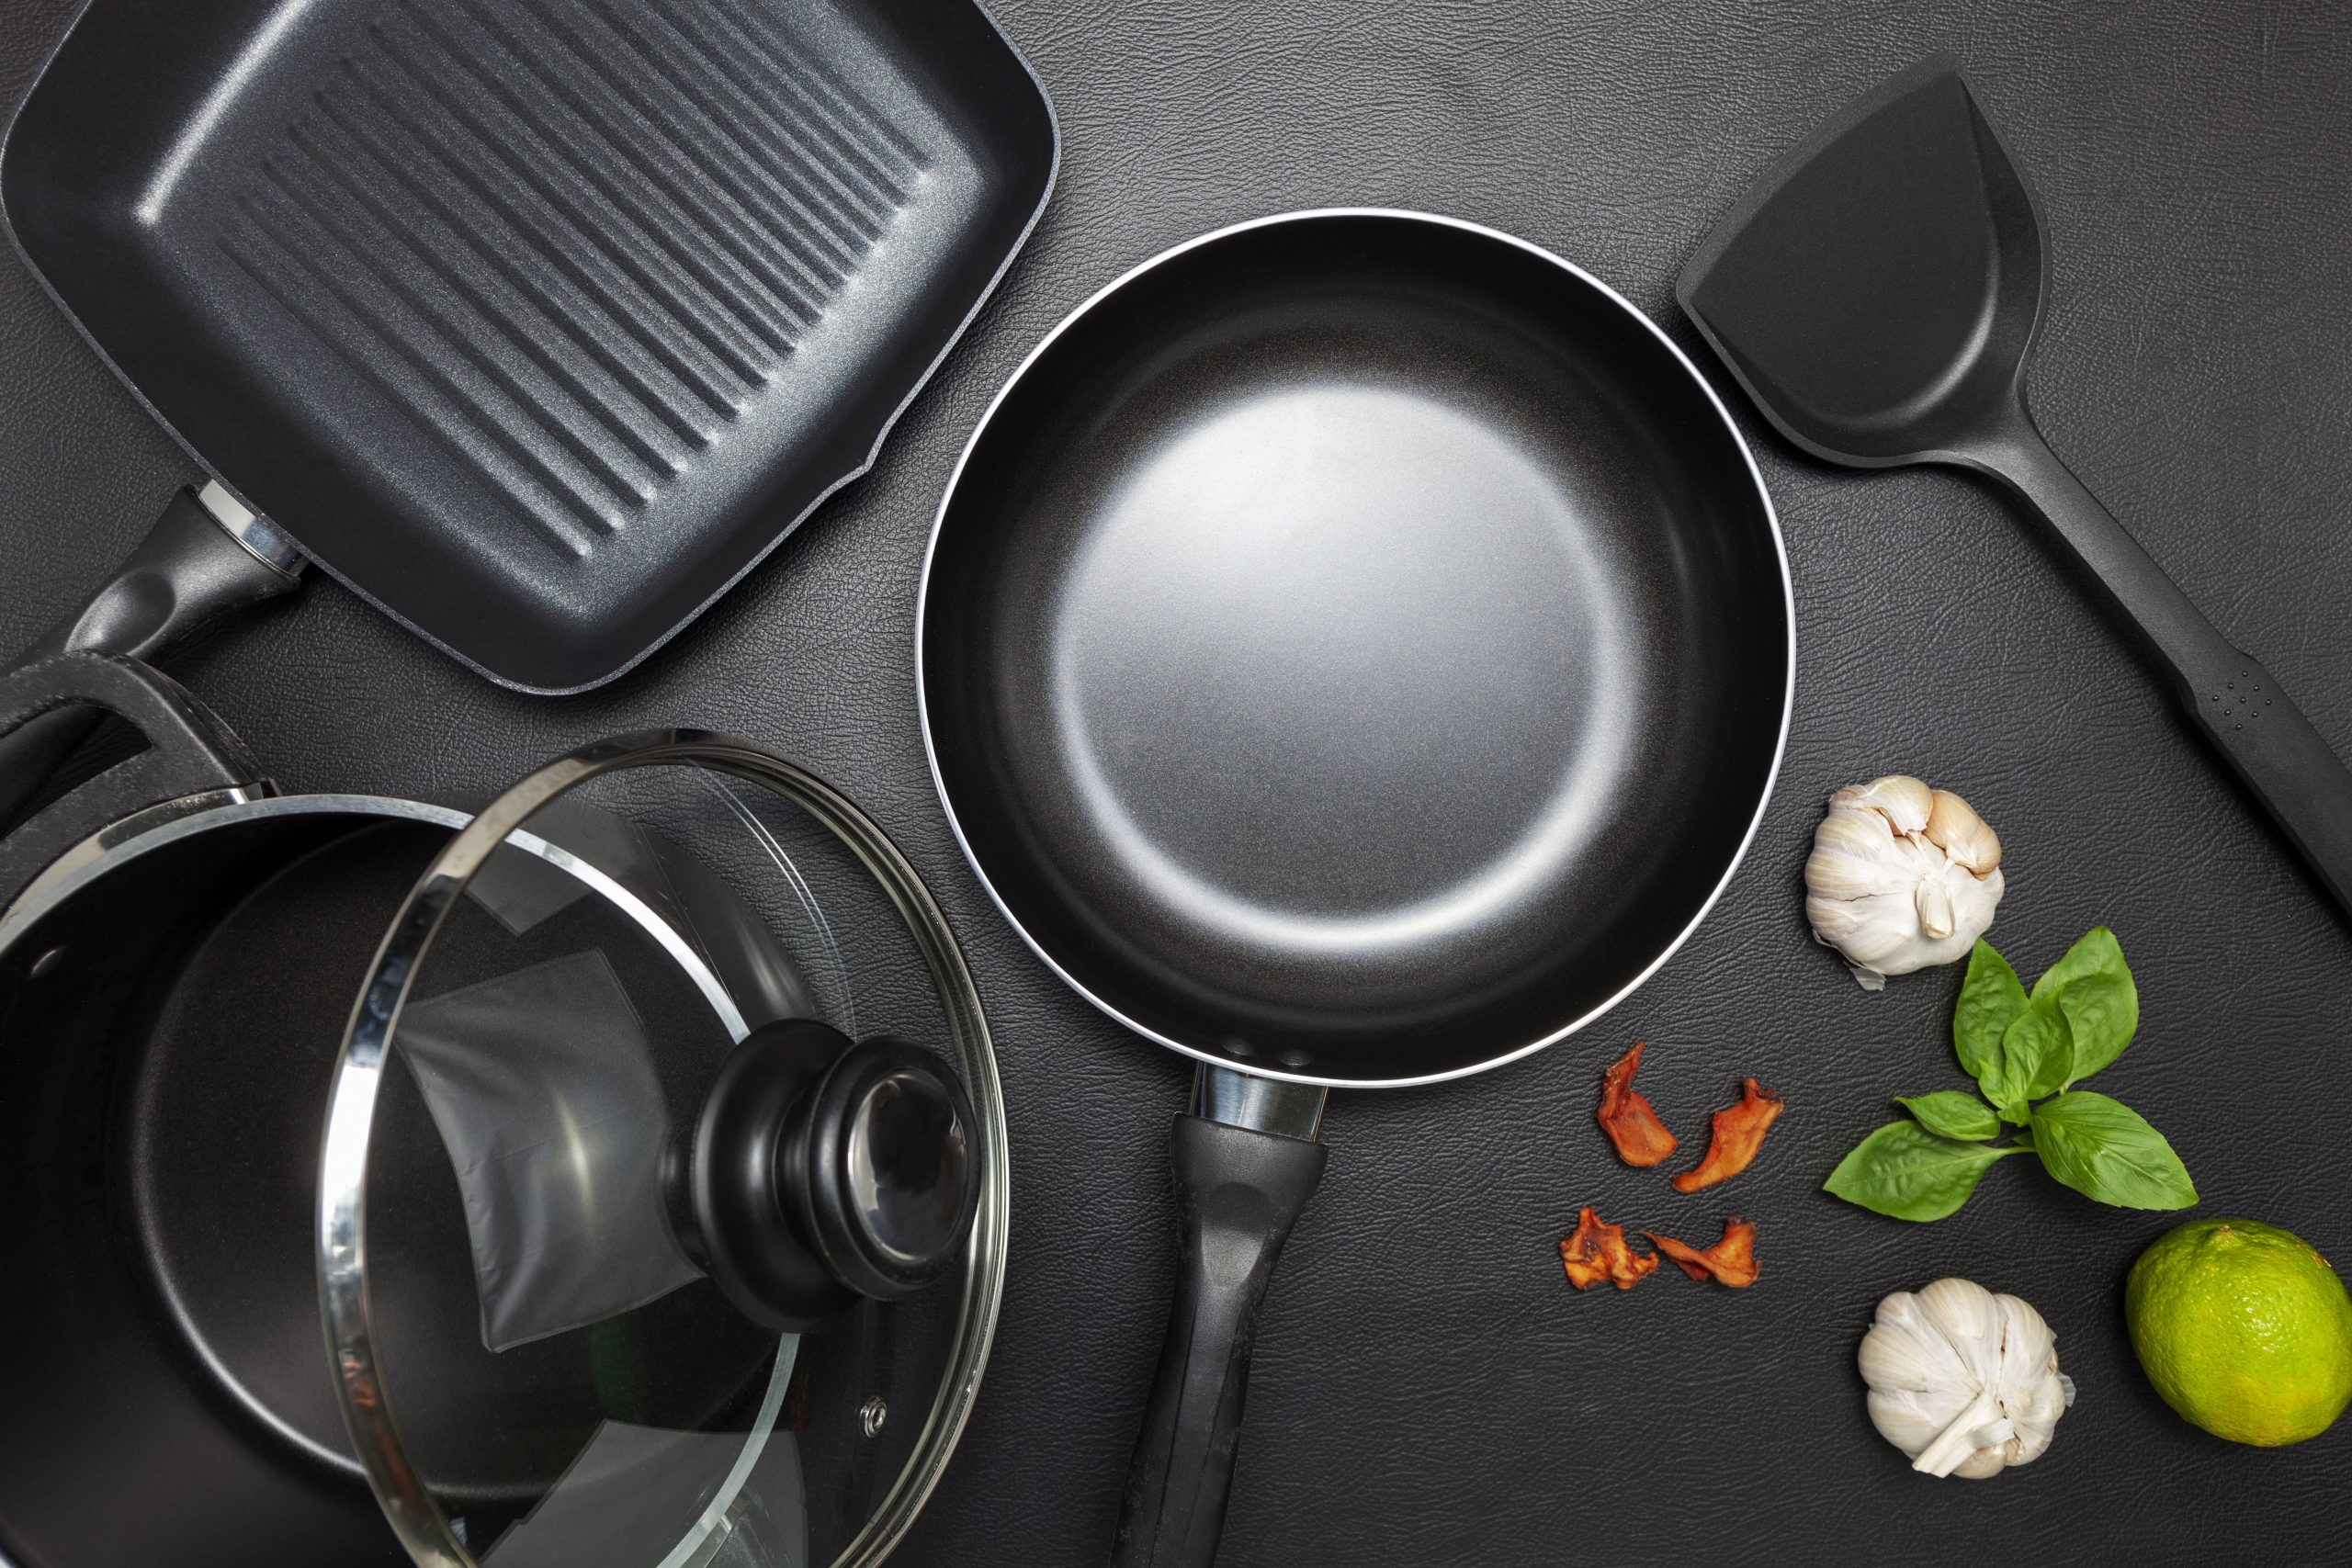 Best Ceramic Frying Pans 2021 – Ultimate Guide